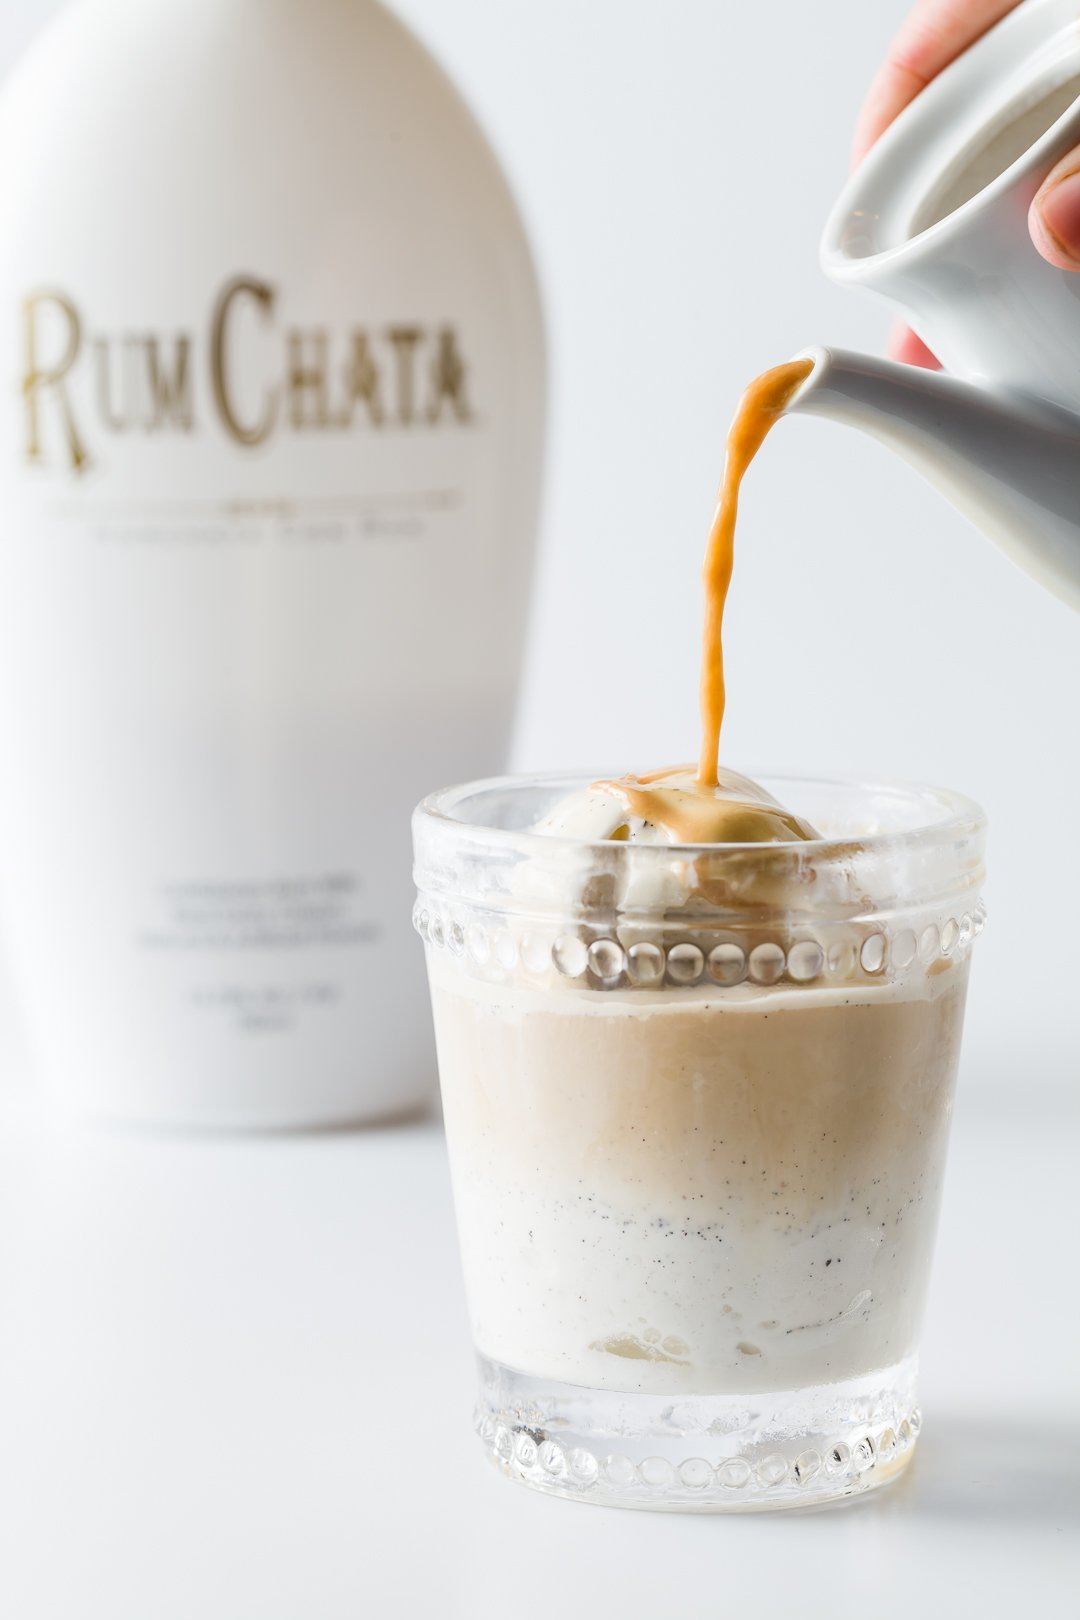 Can You Mix Rumchata With Coffee